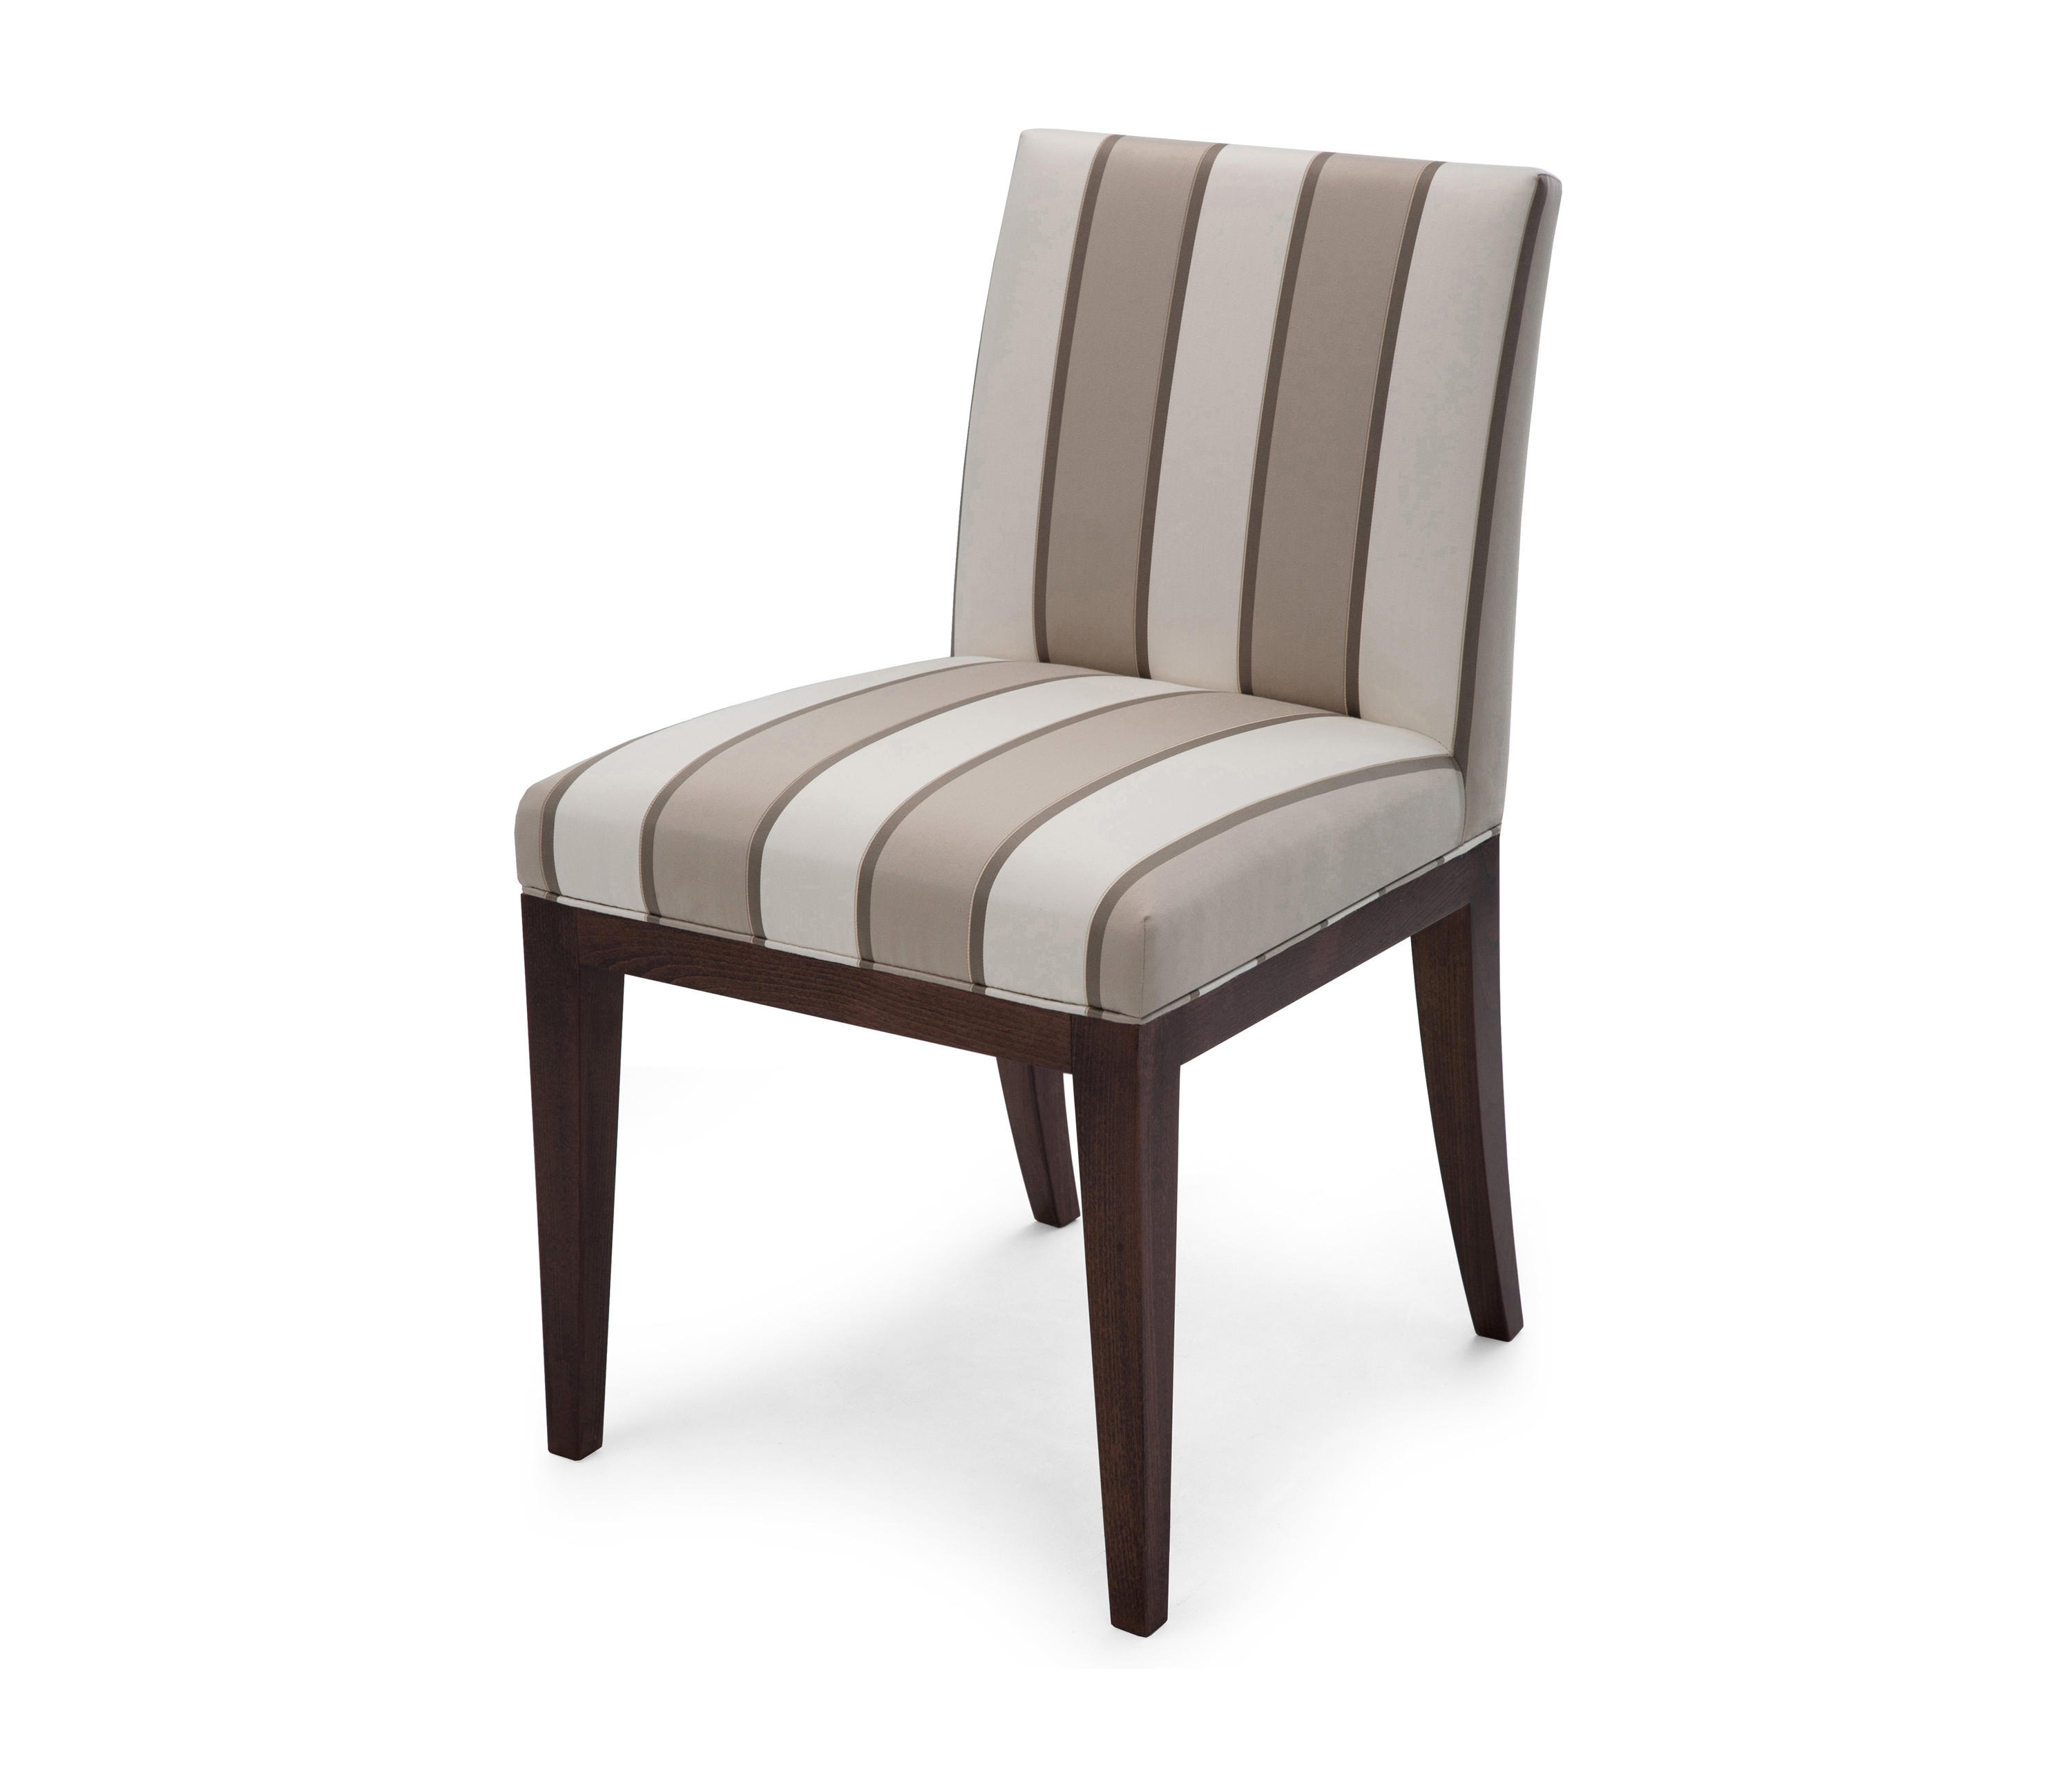 Good ... Byron Dining Chair By The Sofa U0026 Chair Company Ltd | Restaurant Chairs  ...